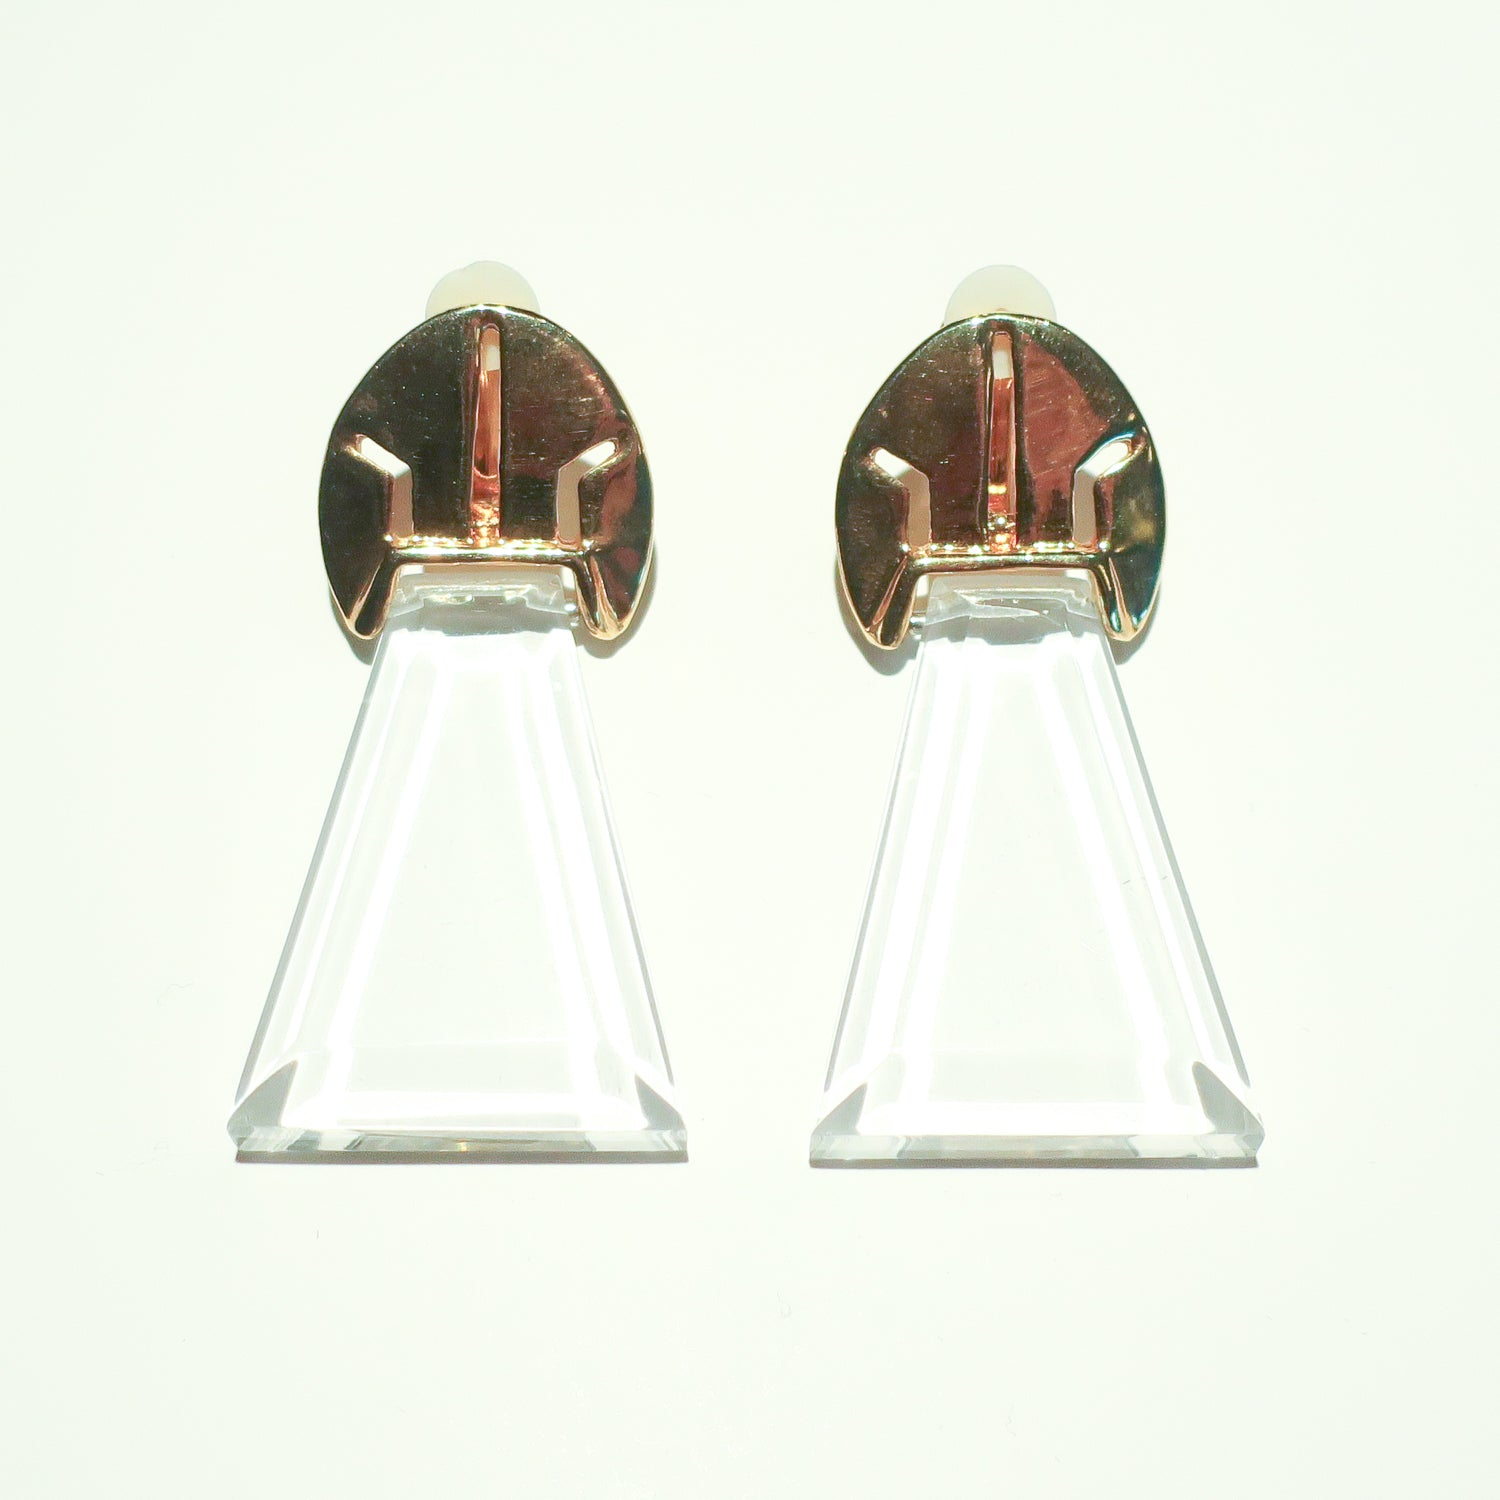 "Second Room Vintage Clothing. Vintage gold tone and clear lucite clip on earrings, 1.25"" across and 2.5"" long. These earrings make an amazing statement, with their chandelier glass look! Free North American shipping on all orders."